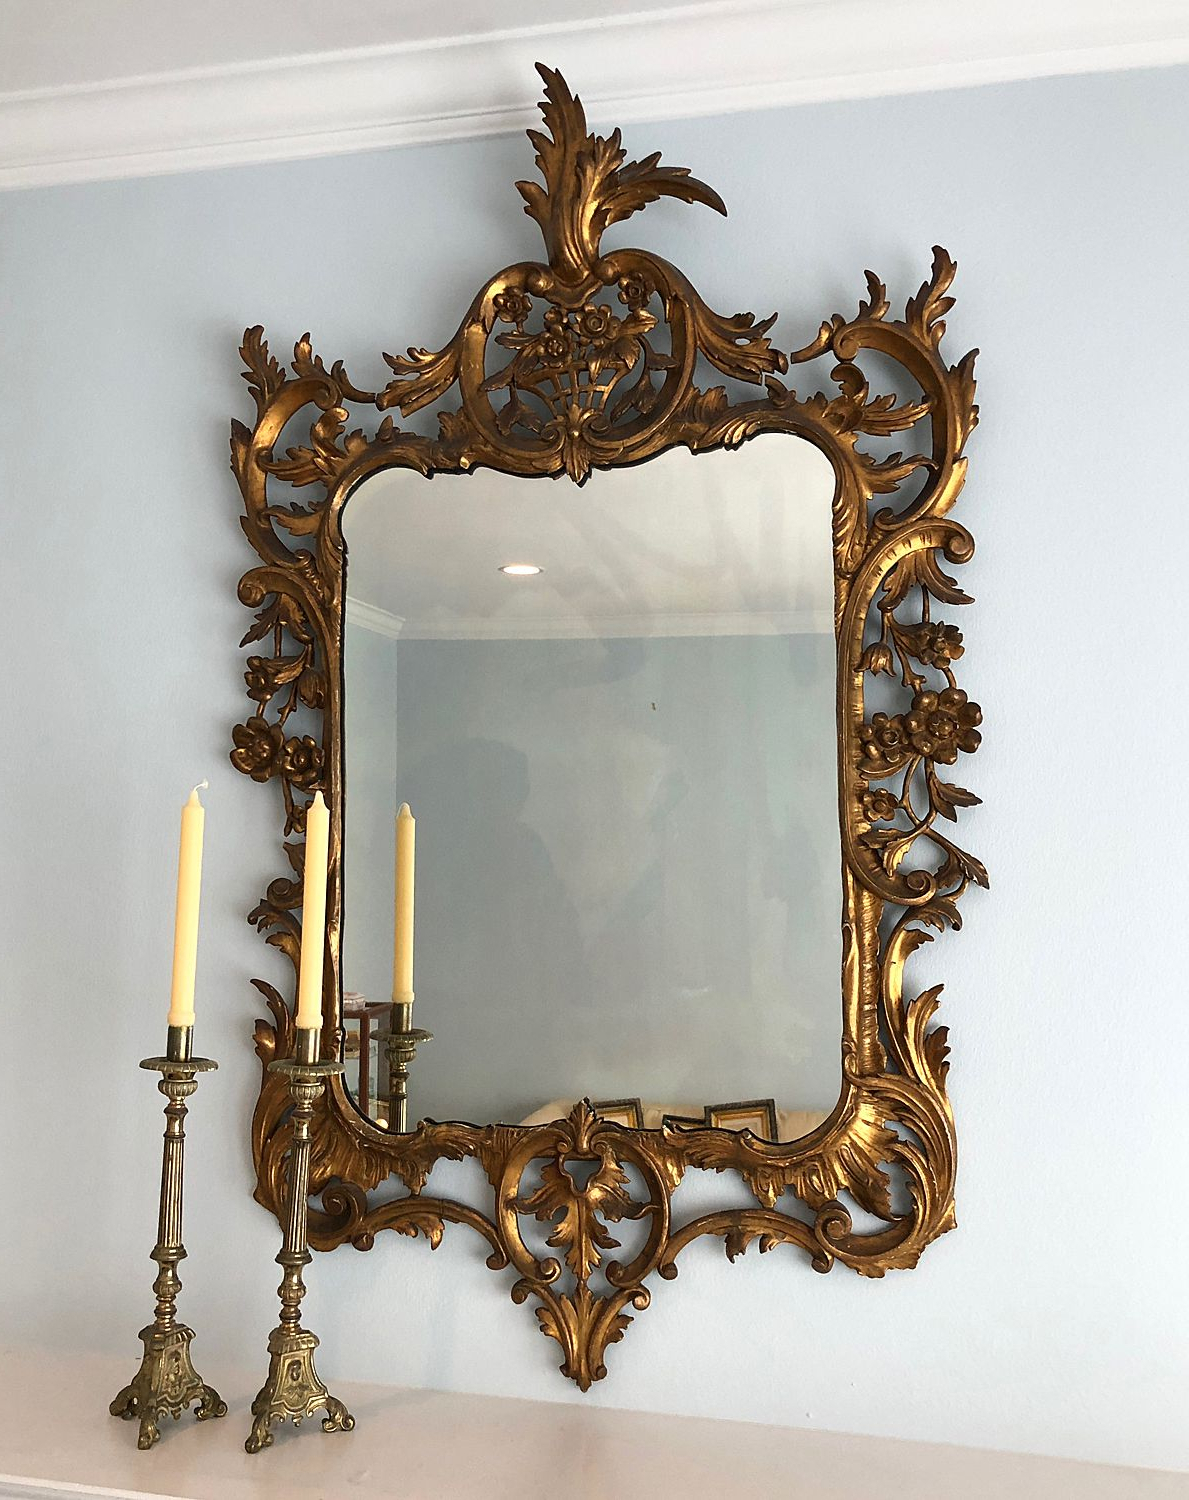 Large Vintage Wall Mirrors Pertaining To 2019 Large Vintage Italian Carved Gilt Wood Wall Mirror In (View 3 of 20)